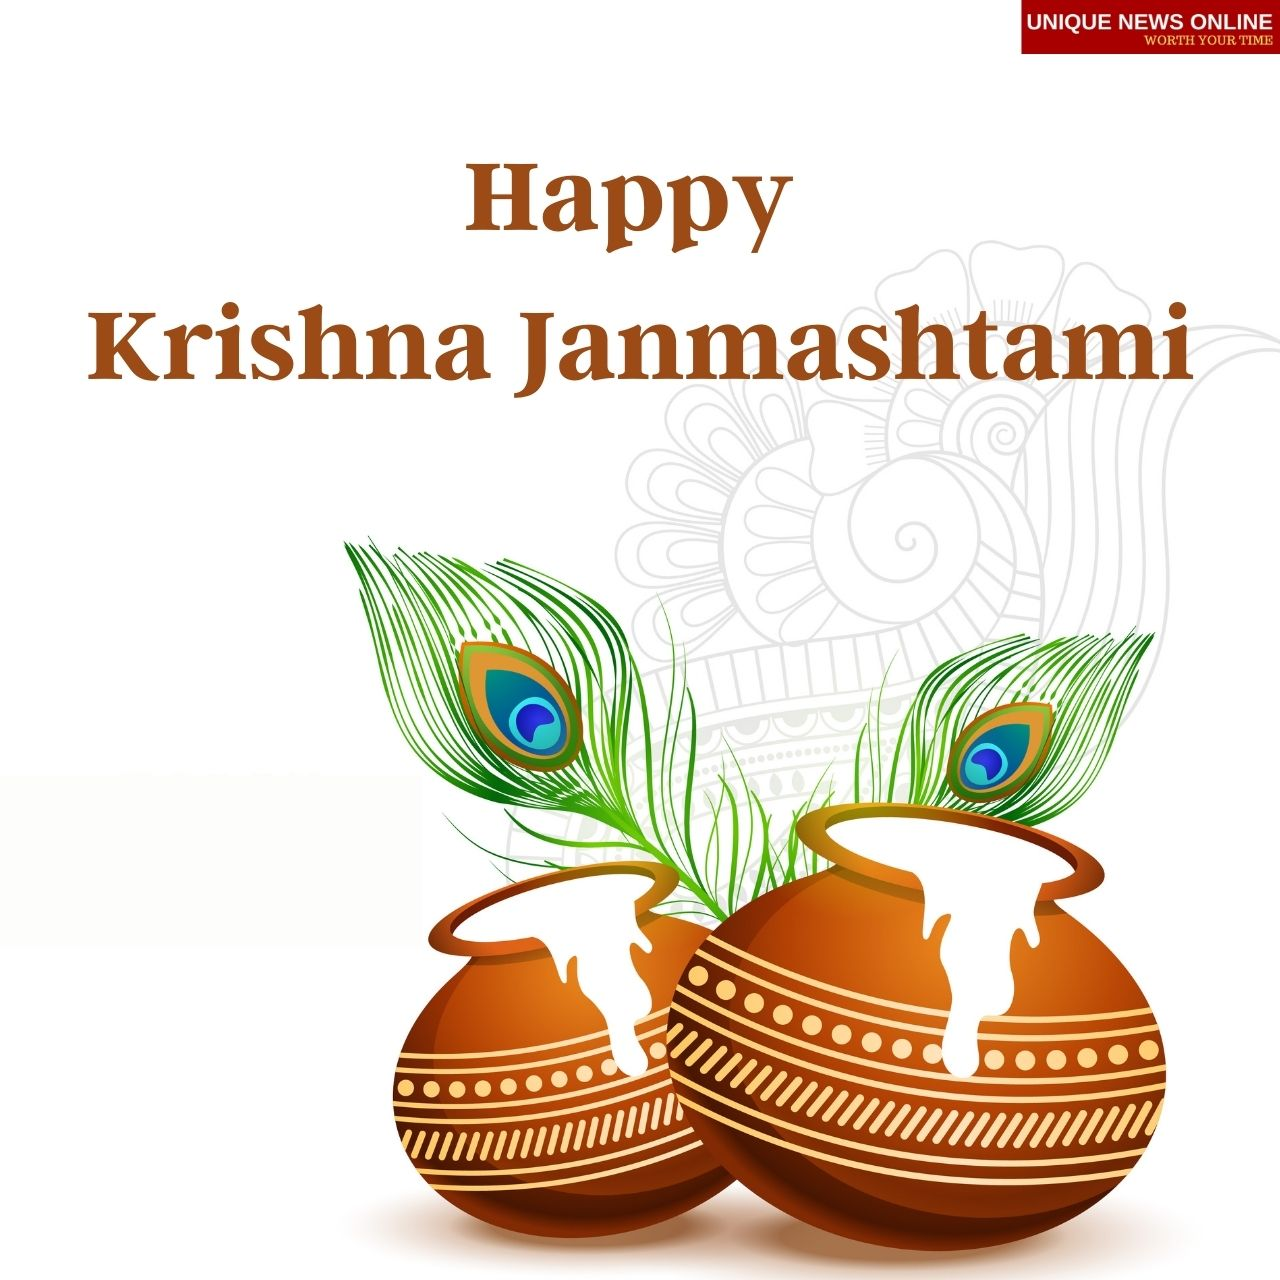 Happy Krishna Janmashtami 2021 Wishes, HD Images, Quotes, Messages, Greetings, Facebook & WhatsApp Status